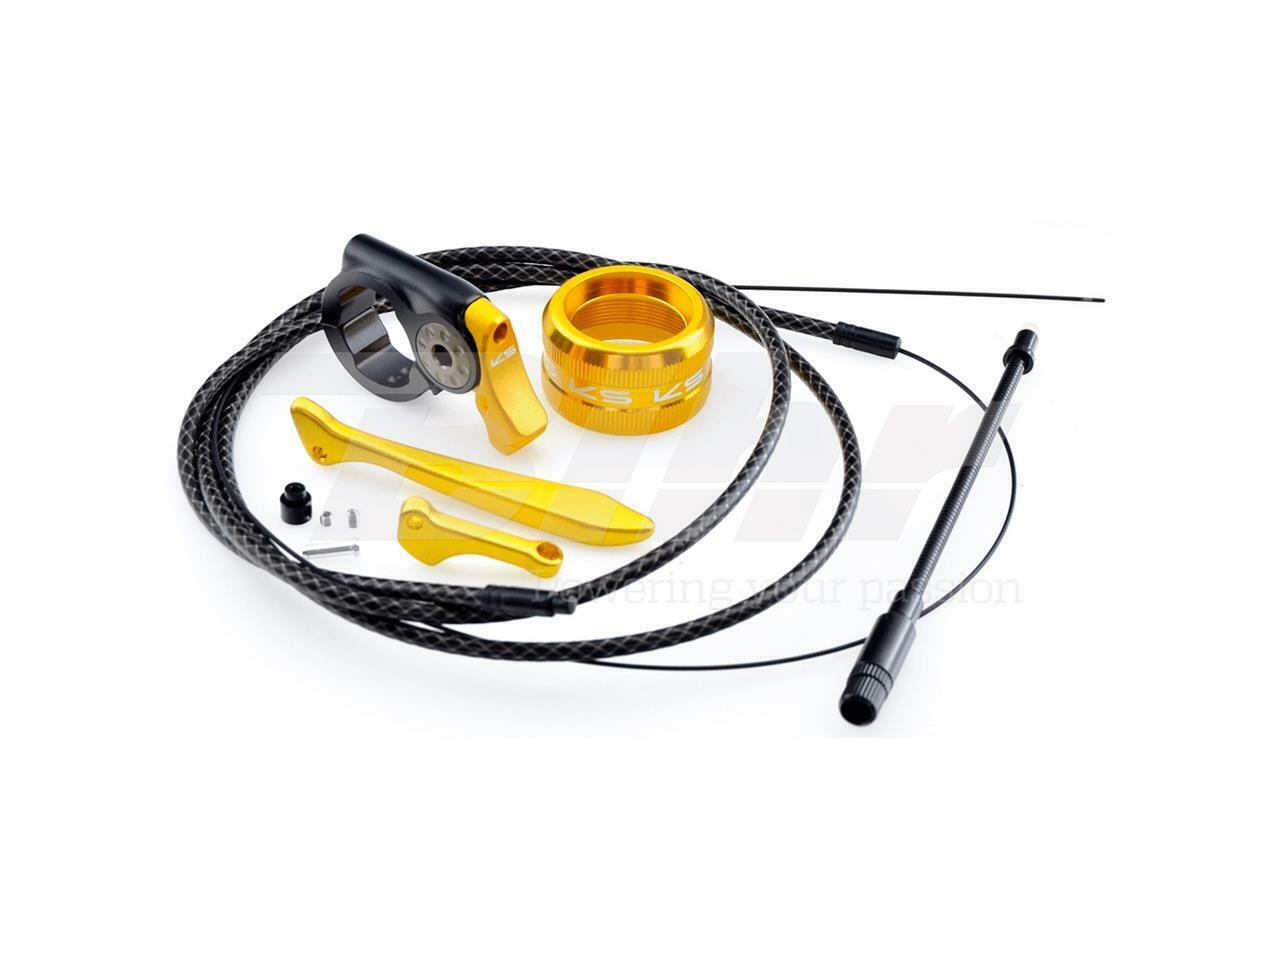 Ks Kit  Inserts gold + Cable for Seatpost Telescopic Ø 30.9 mm MTB Bike Oif  simple and generous design